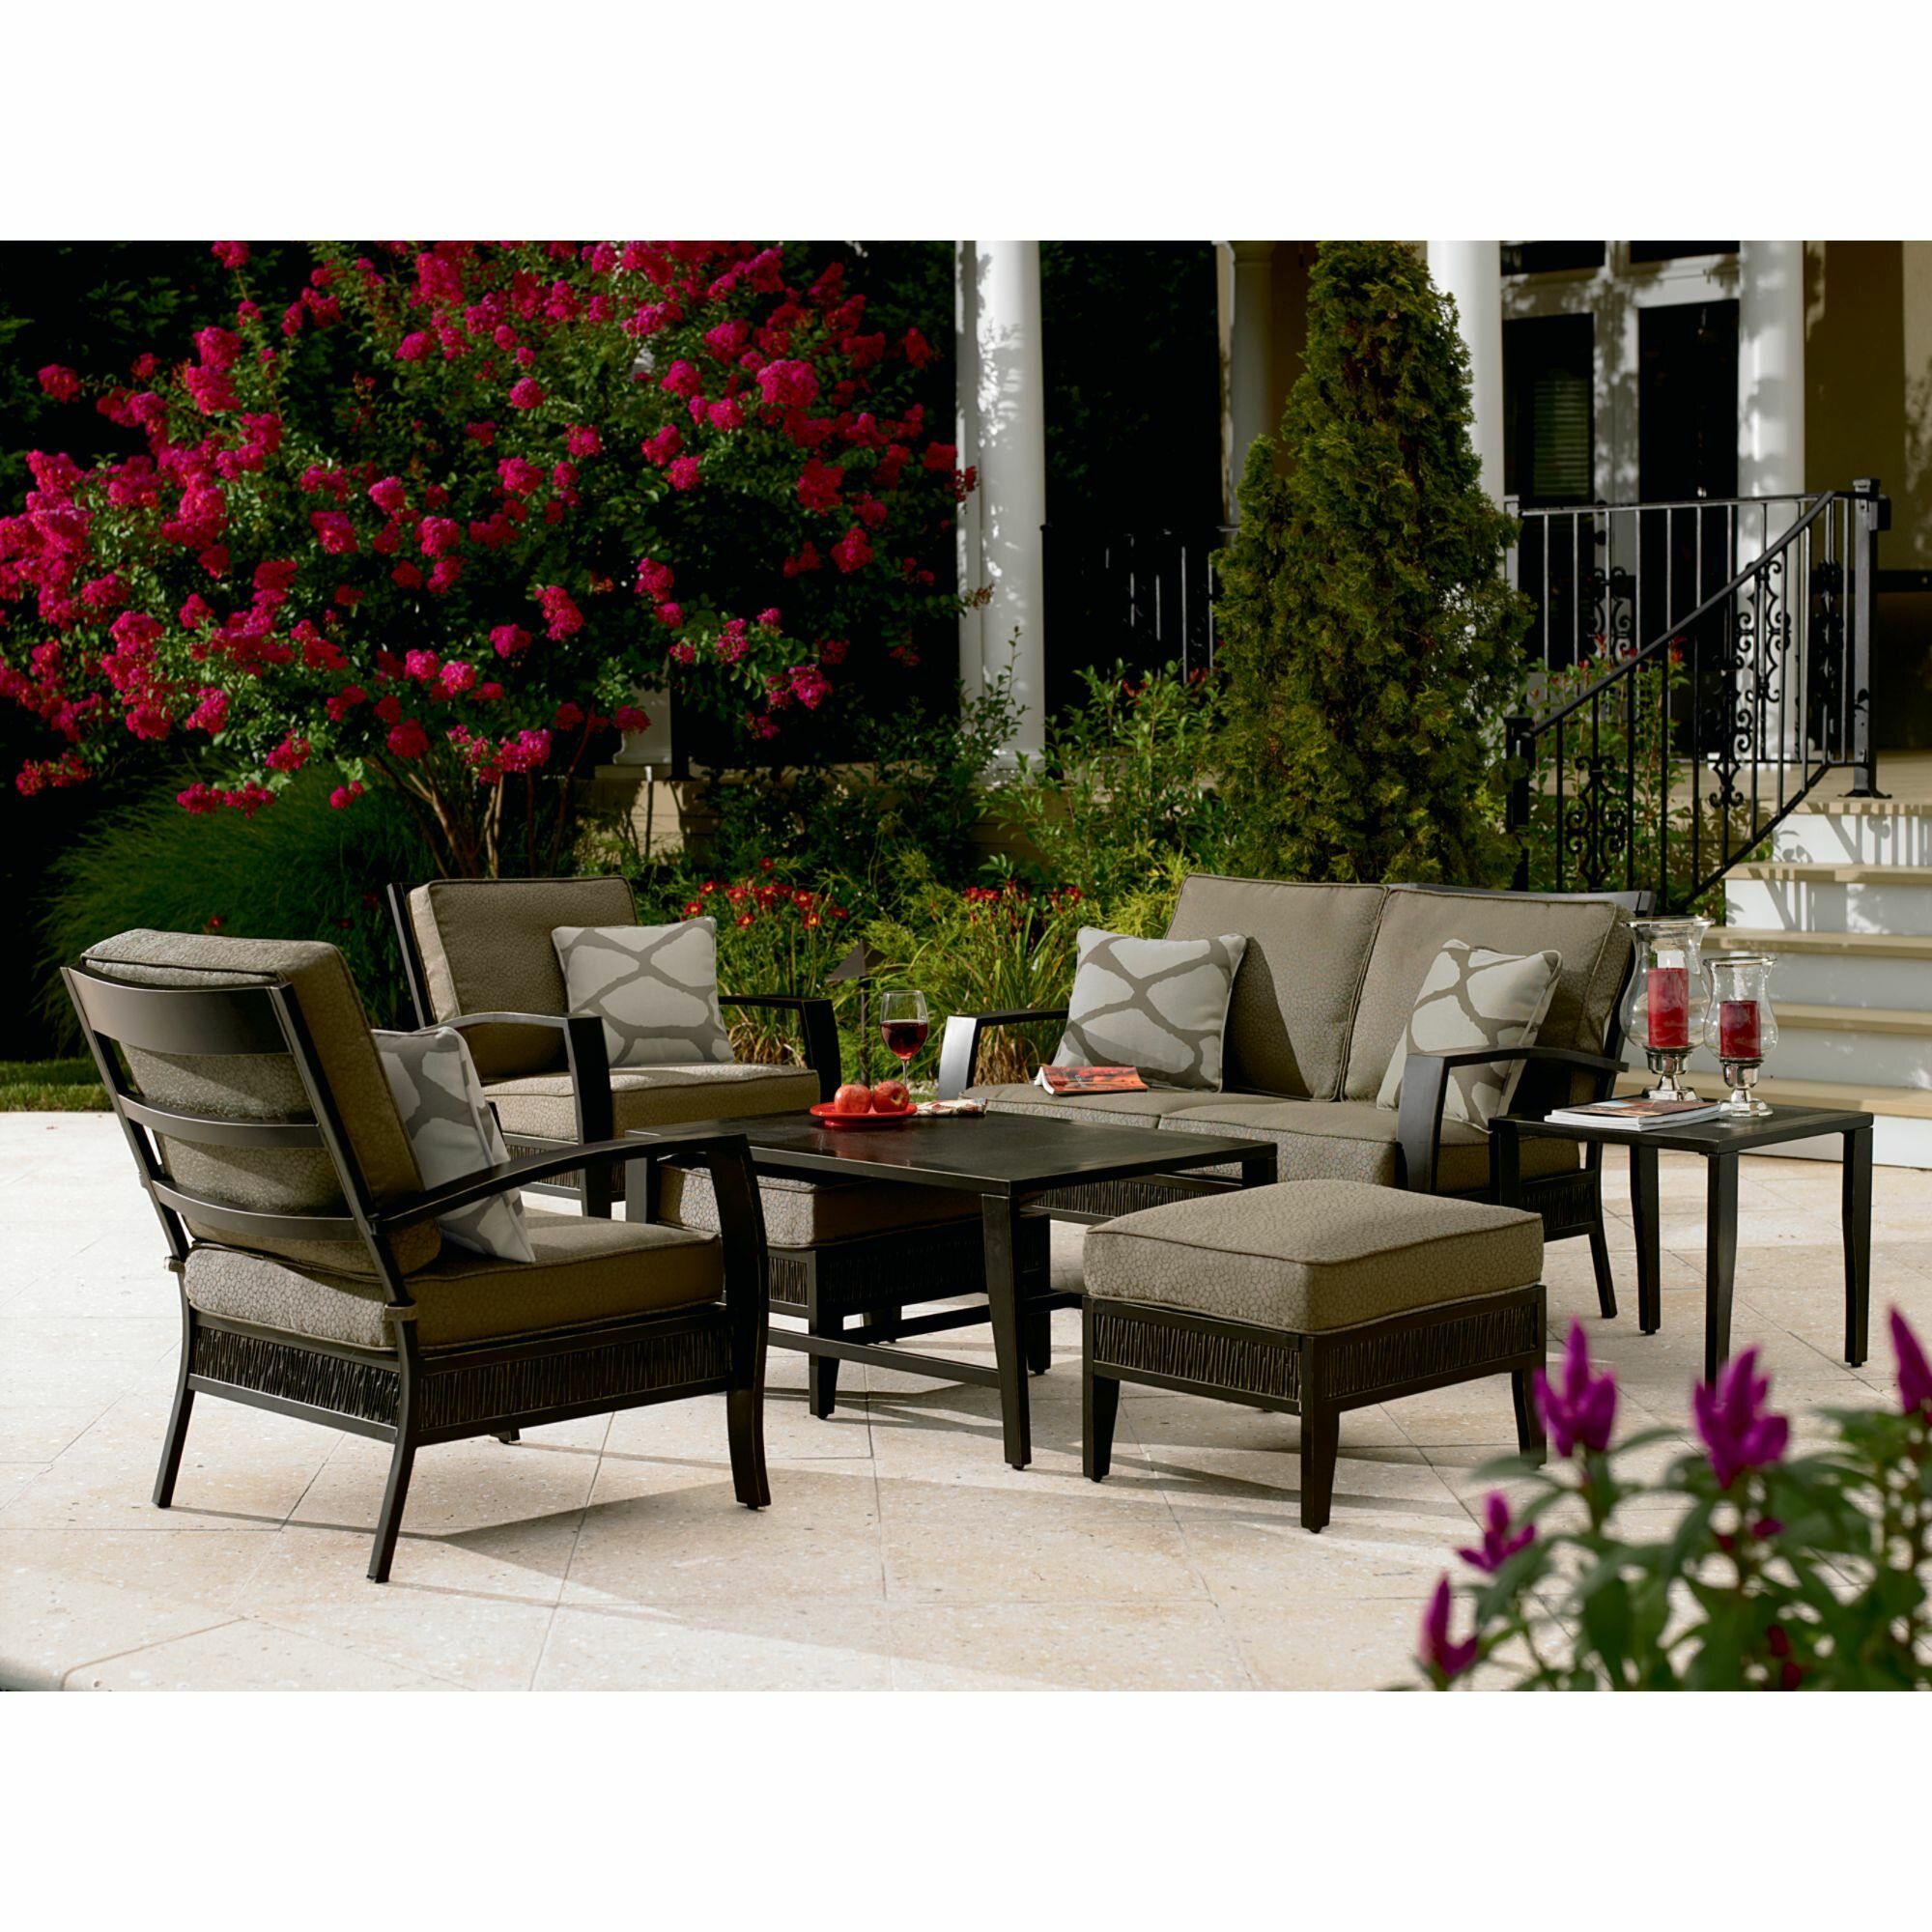 Sears patio furniture sets clearance for Patio couches for sale